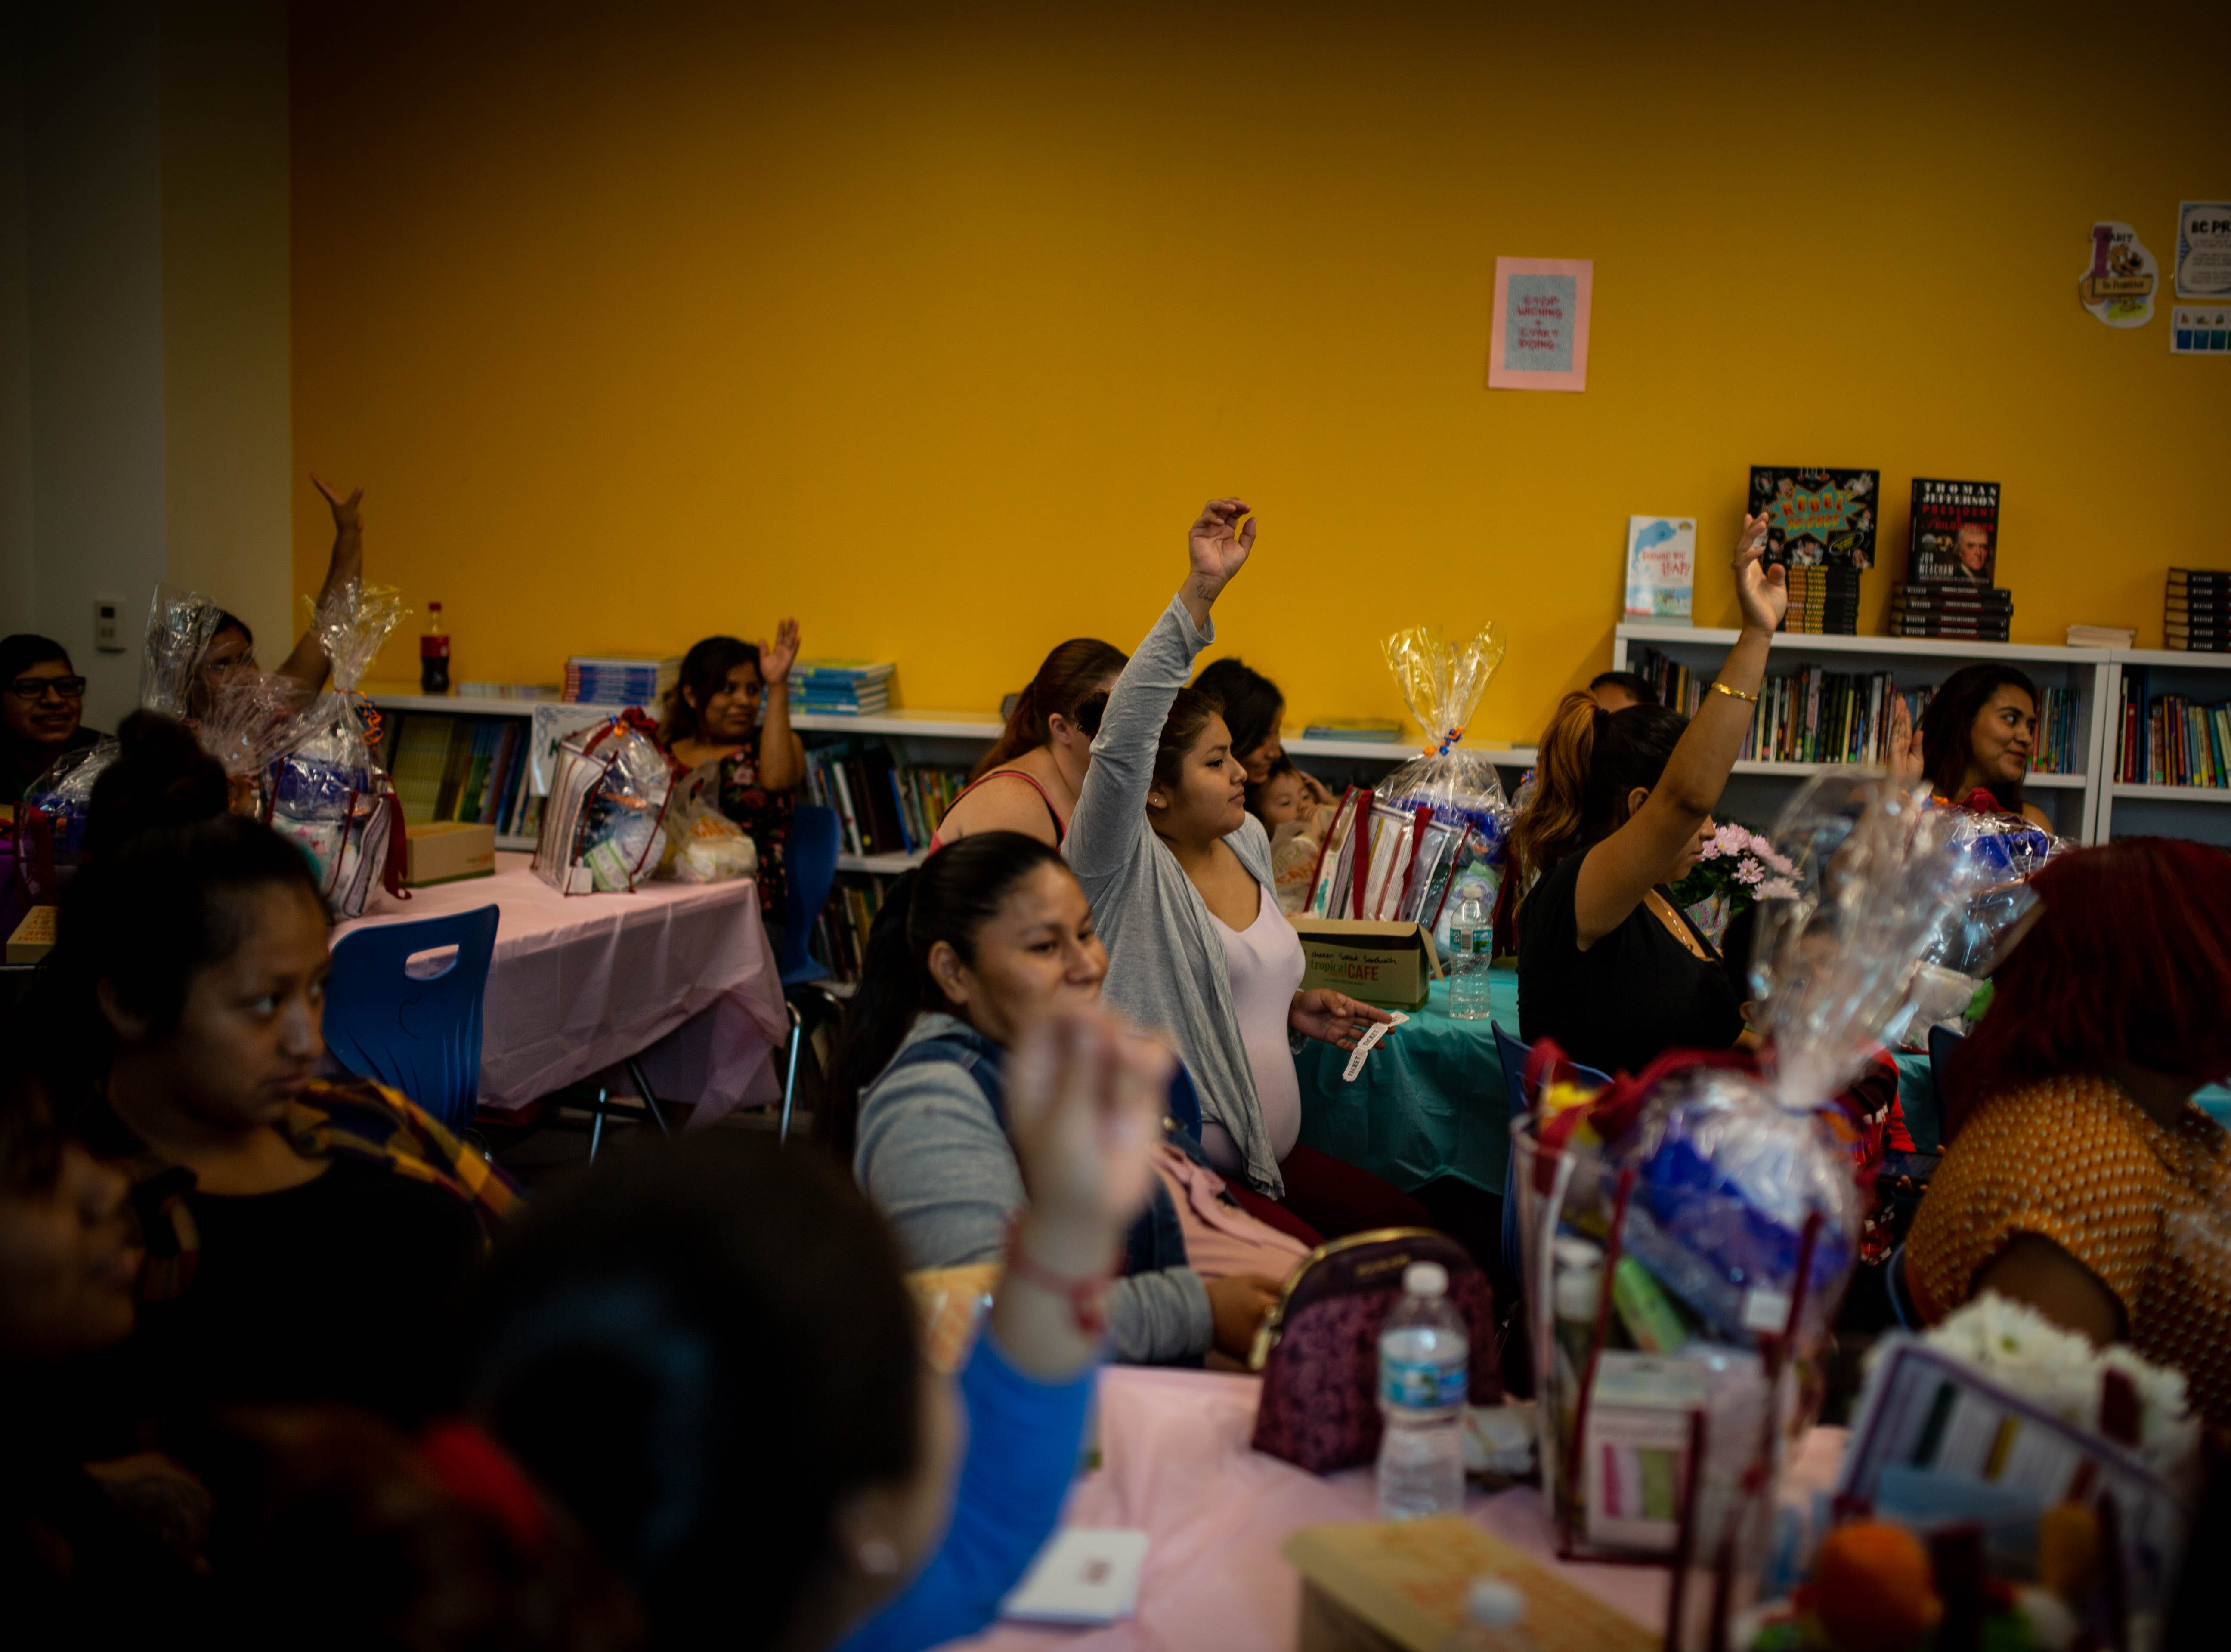 Participants raise their hands during a presentation at the fourth annual Immokalee Community Baby Shower at the Boys & Girls Club in Immokalee on Thursday, May 9, 2019.